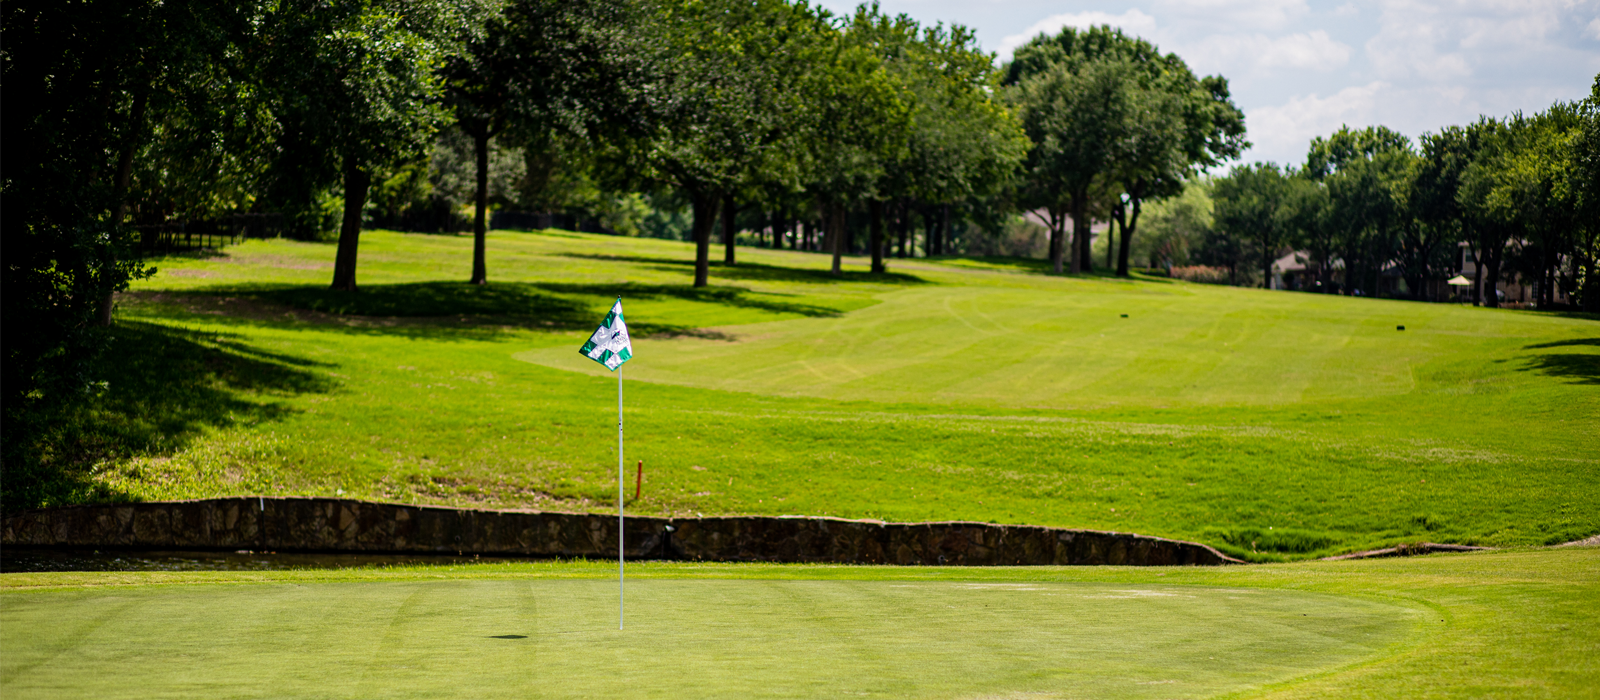 7 Awesome Golf Tournament Formats